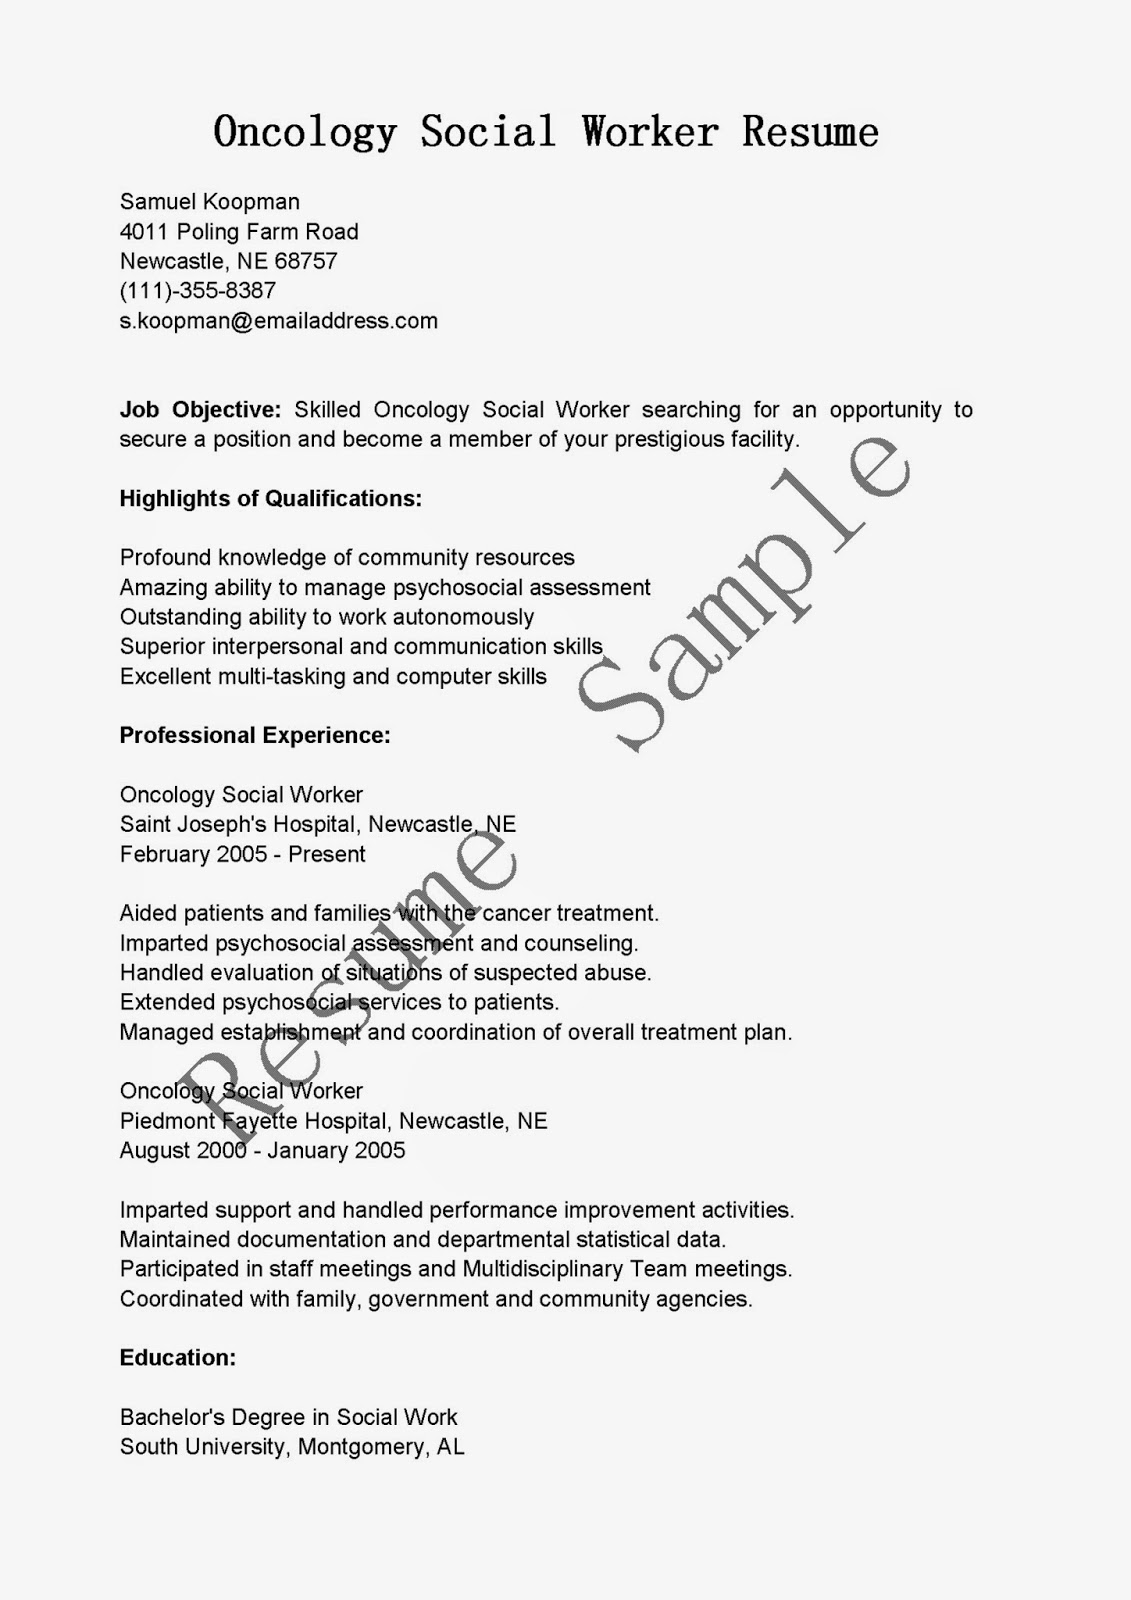 100 oncology nurse resume sample 100 cover letter on a